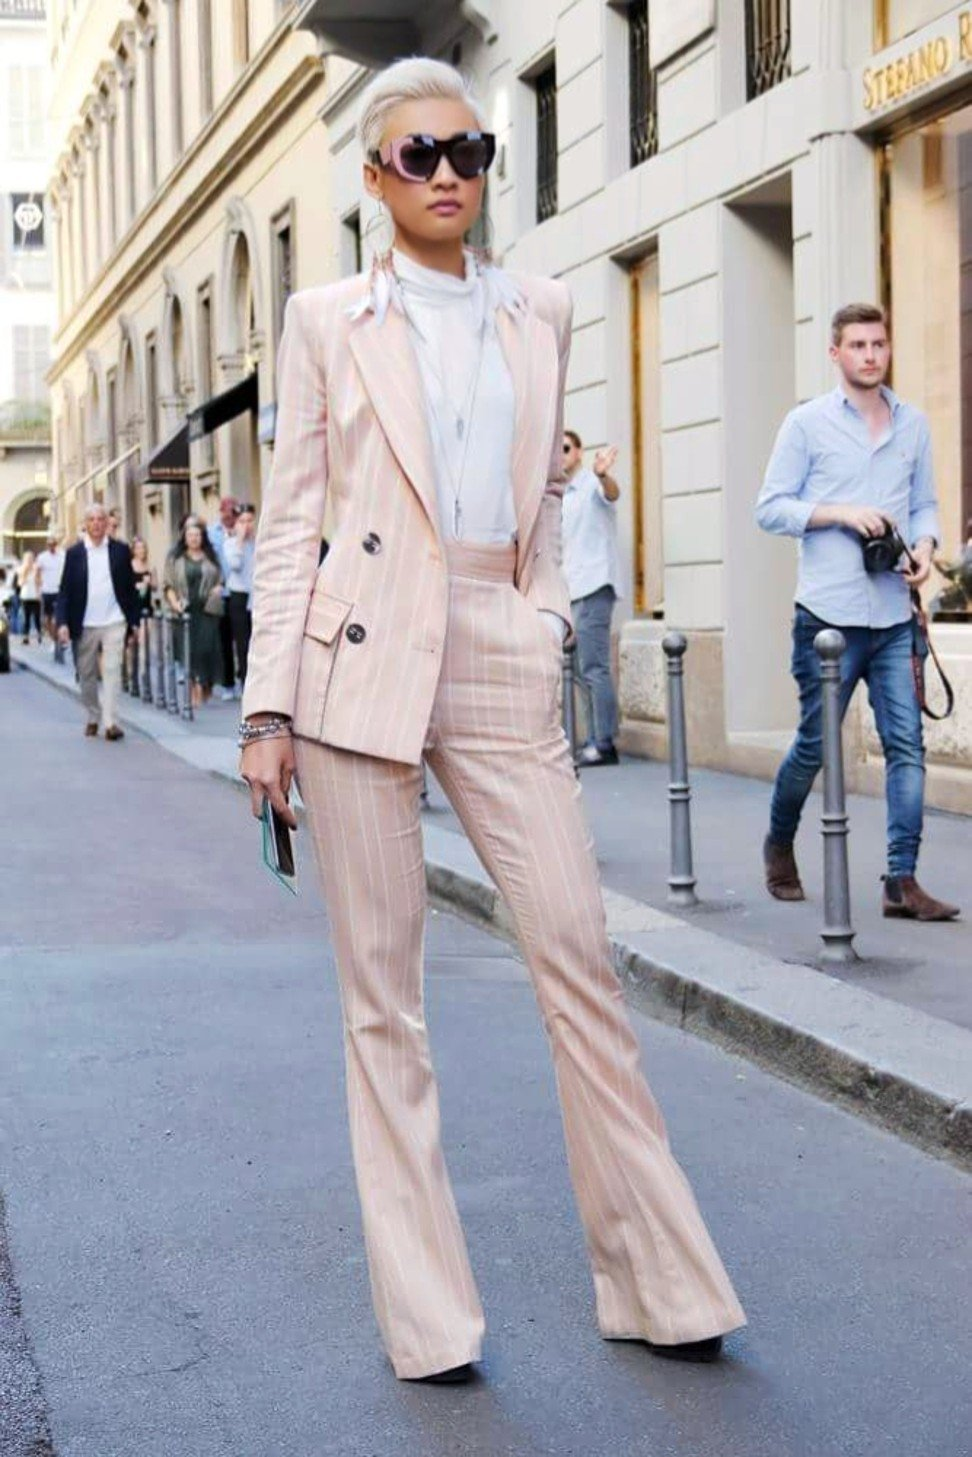 Meet Esther Quek, Dubai's most stylish girl-about-town – who